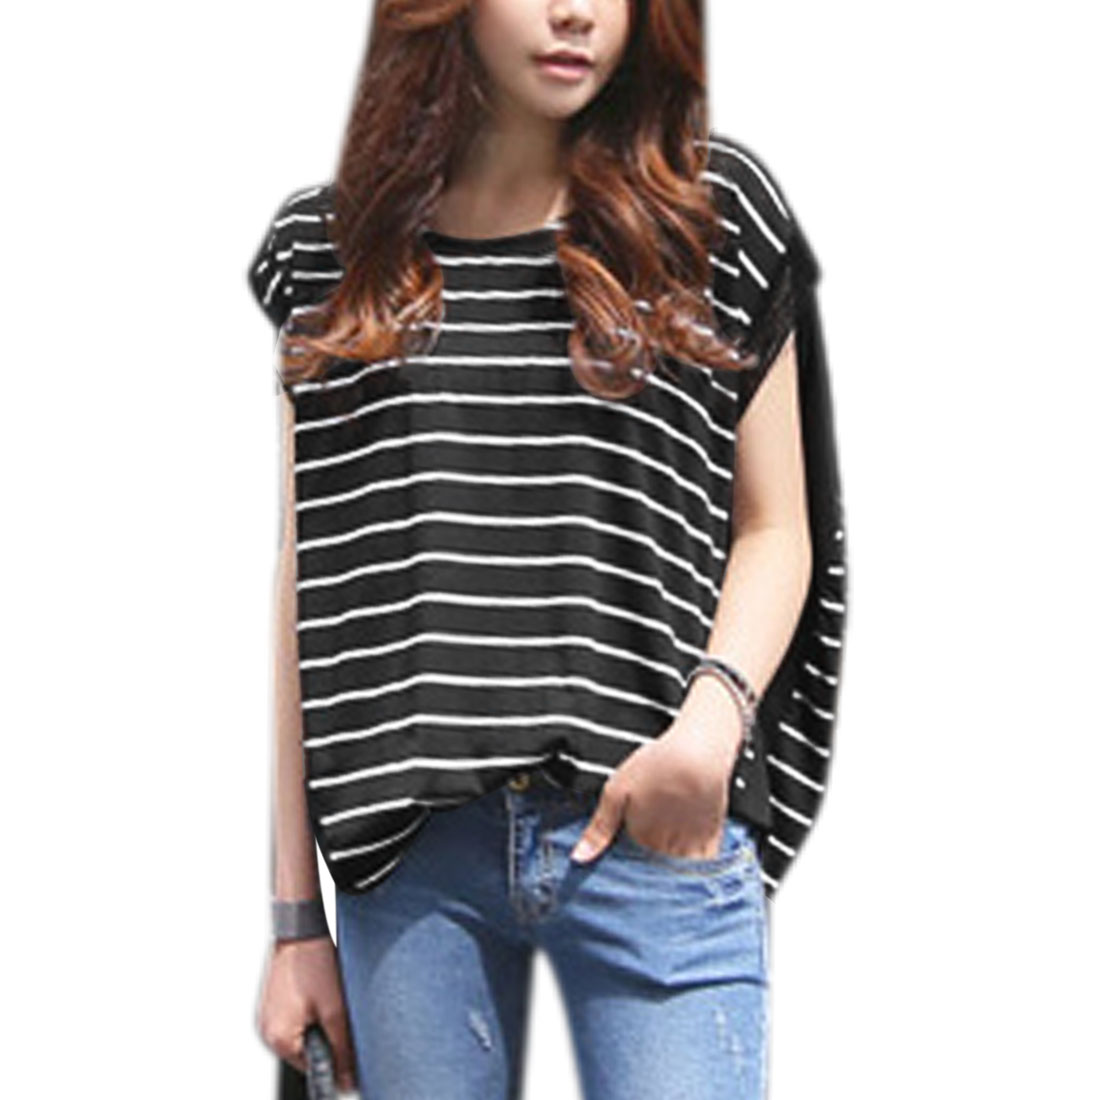 Women's Round Neck Stripes Mesh Panel High-Low Hem Casual Blouse Black (Size S / 4)